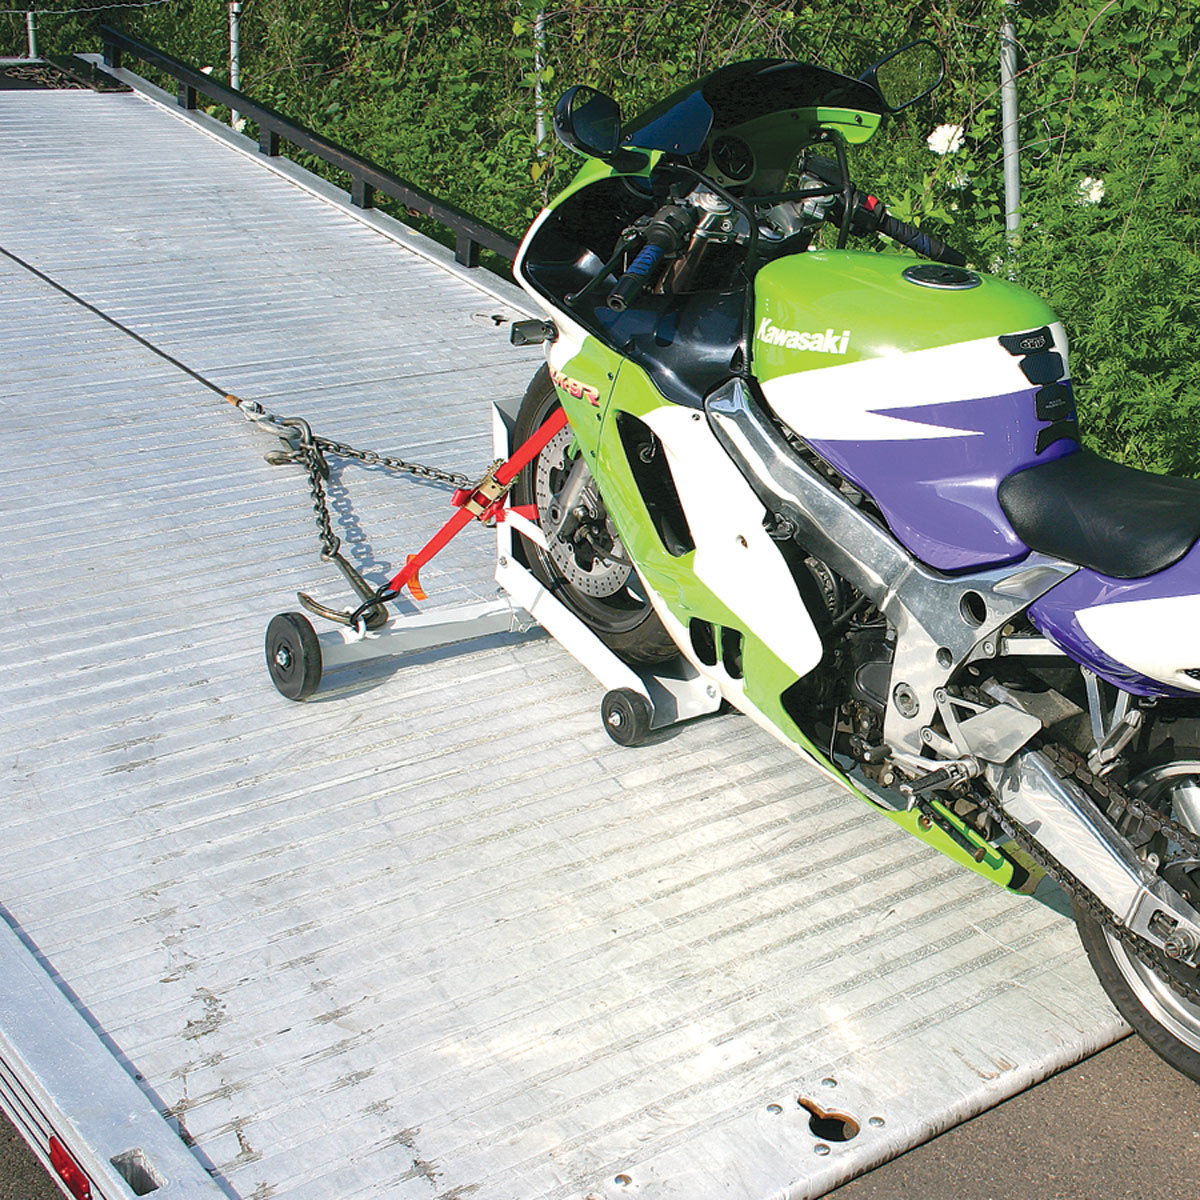 Motorcycle Towing In Bolingbrook, IL